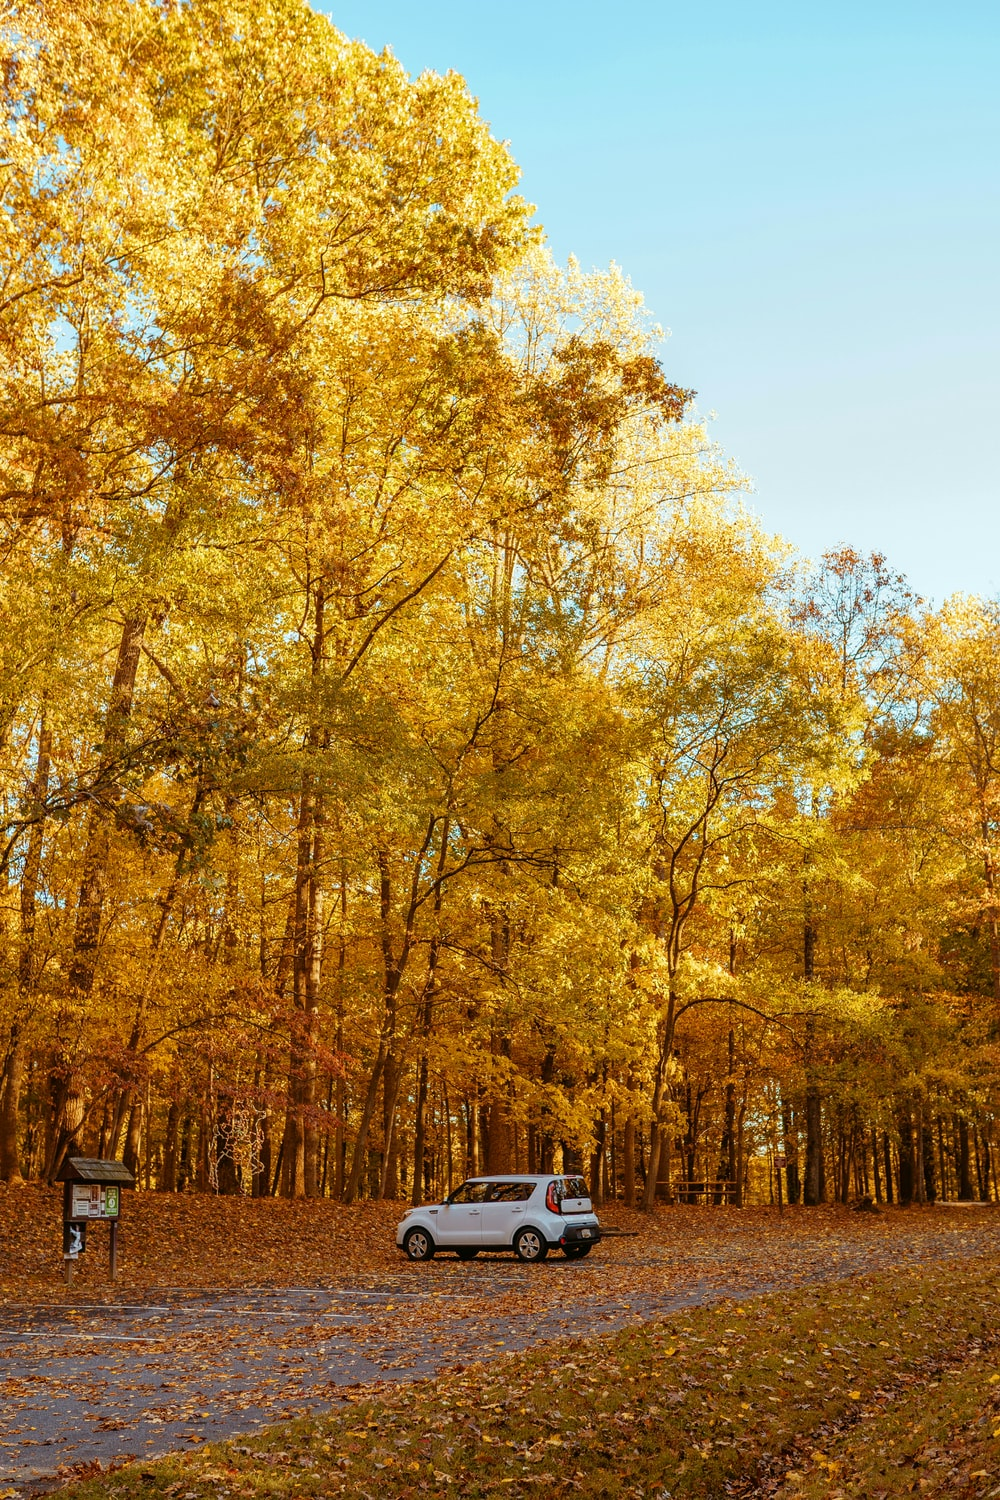 car parked under the trees